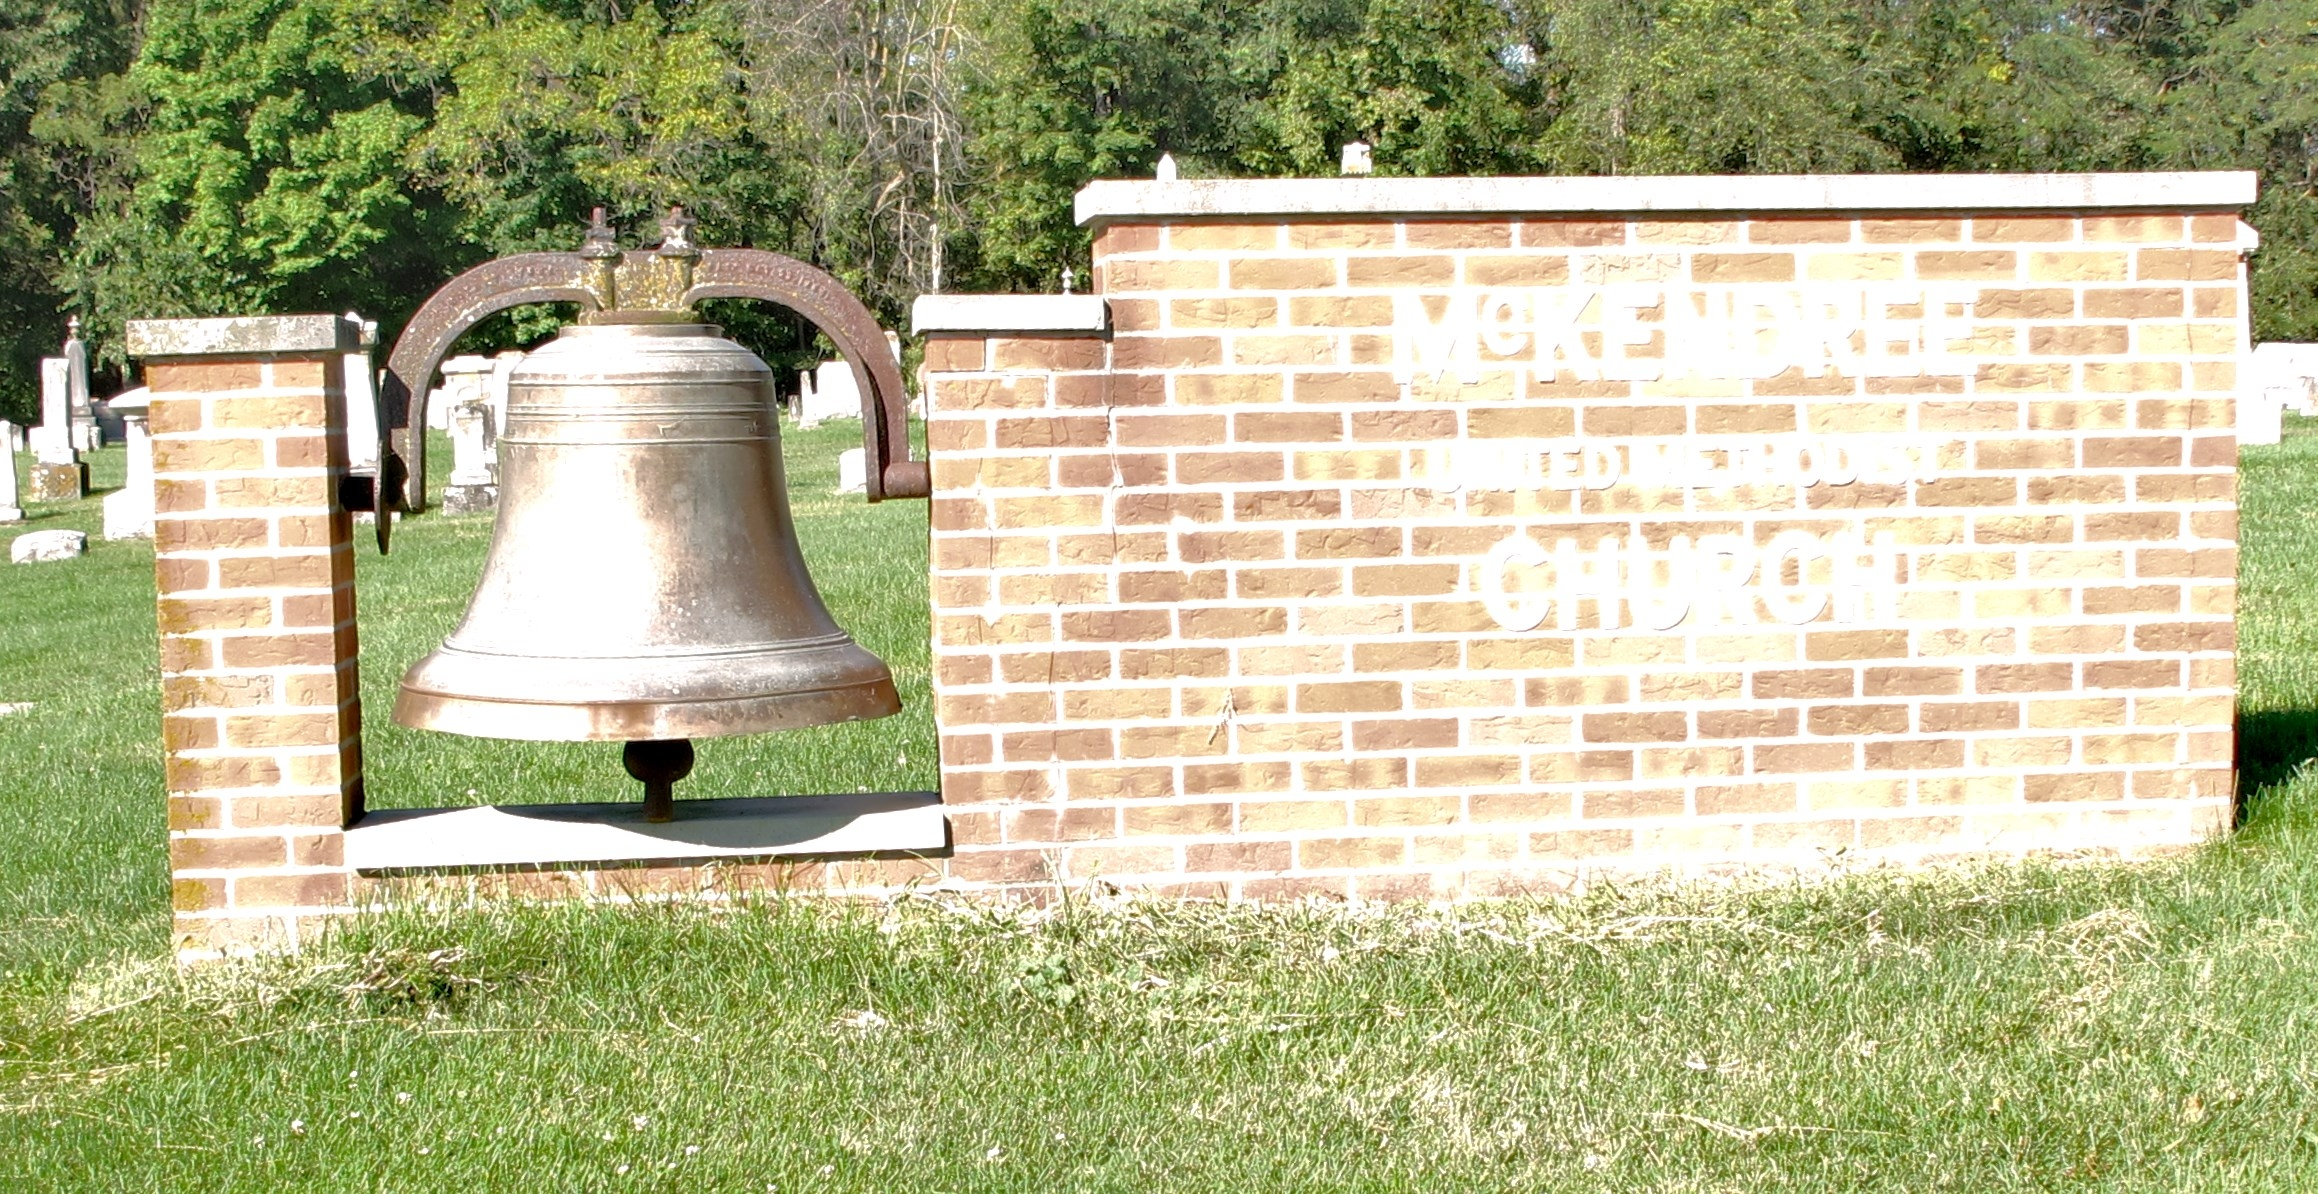 Bell and marquis for the former church that stood at this site